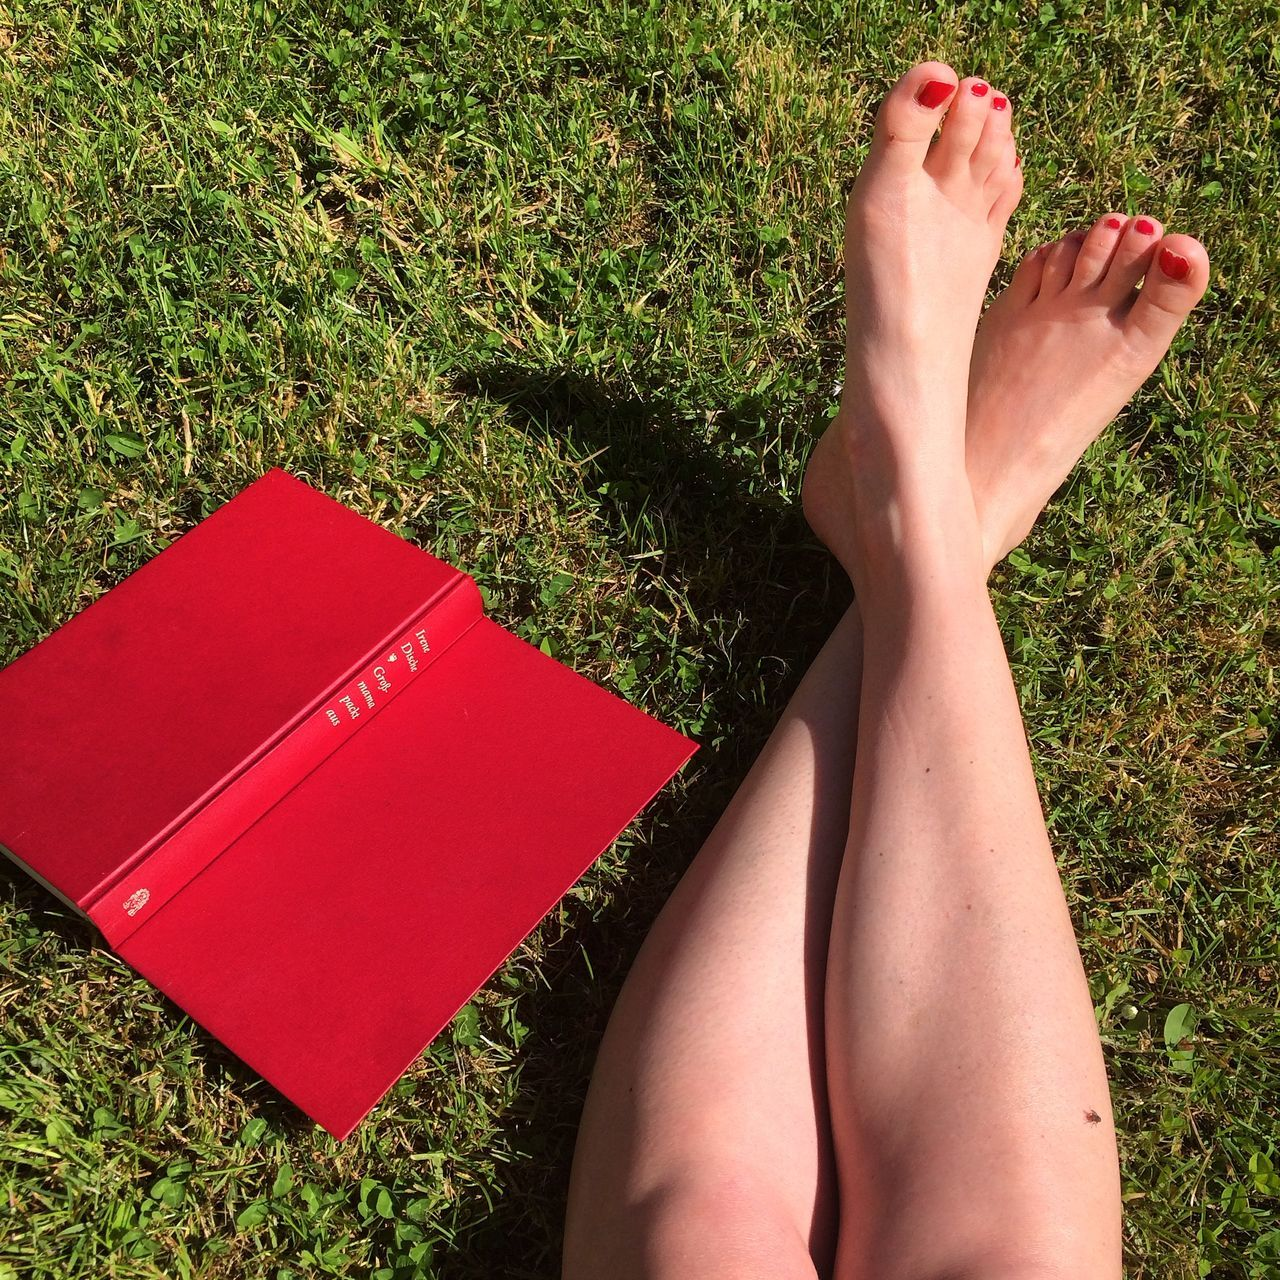 barefoot, low section, human leg, human foot, grass, human body part, red, real people, relaxation, one person, high angle view, day, women, leisure activity, outdoors, nature, close-up, adult, people